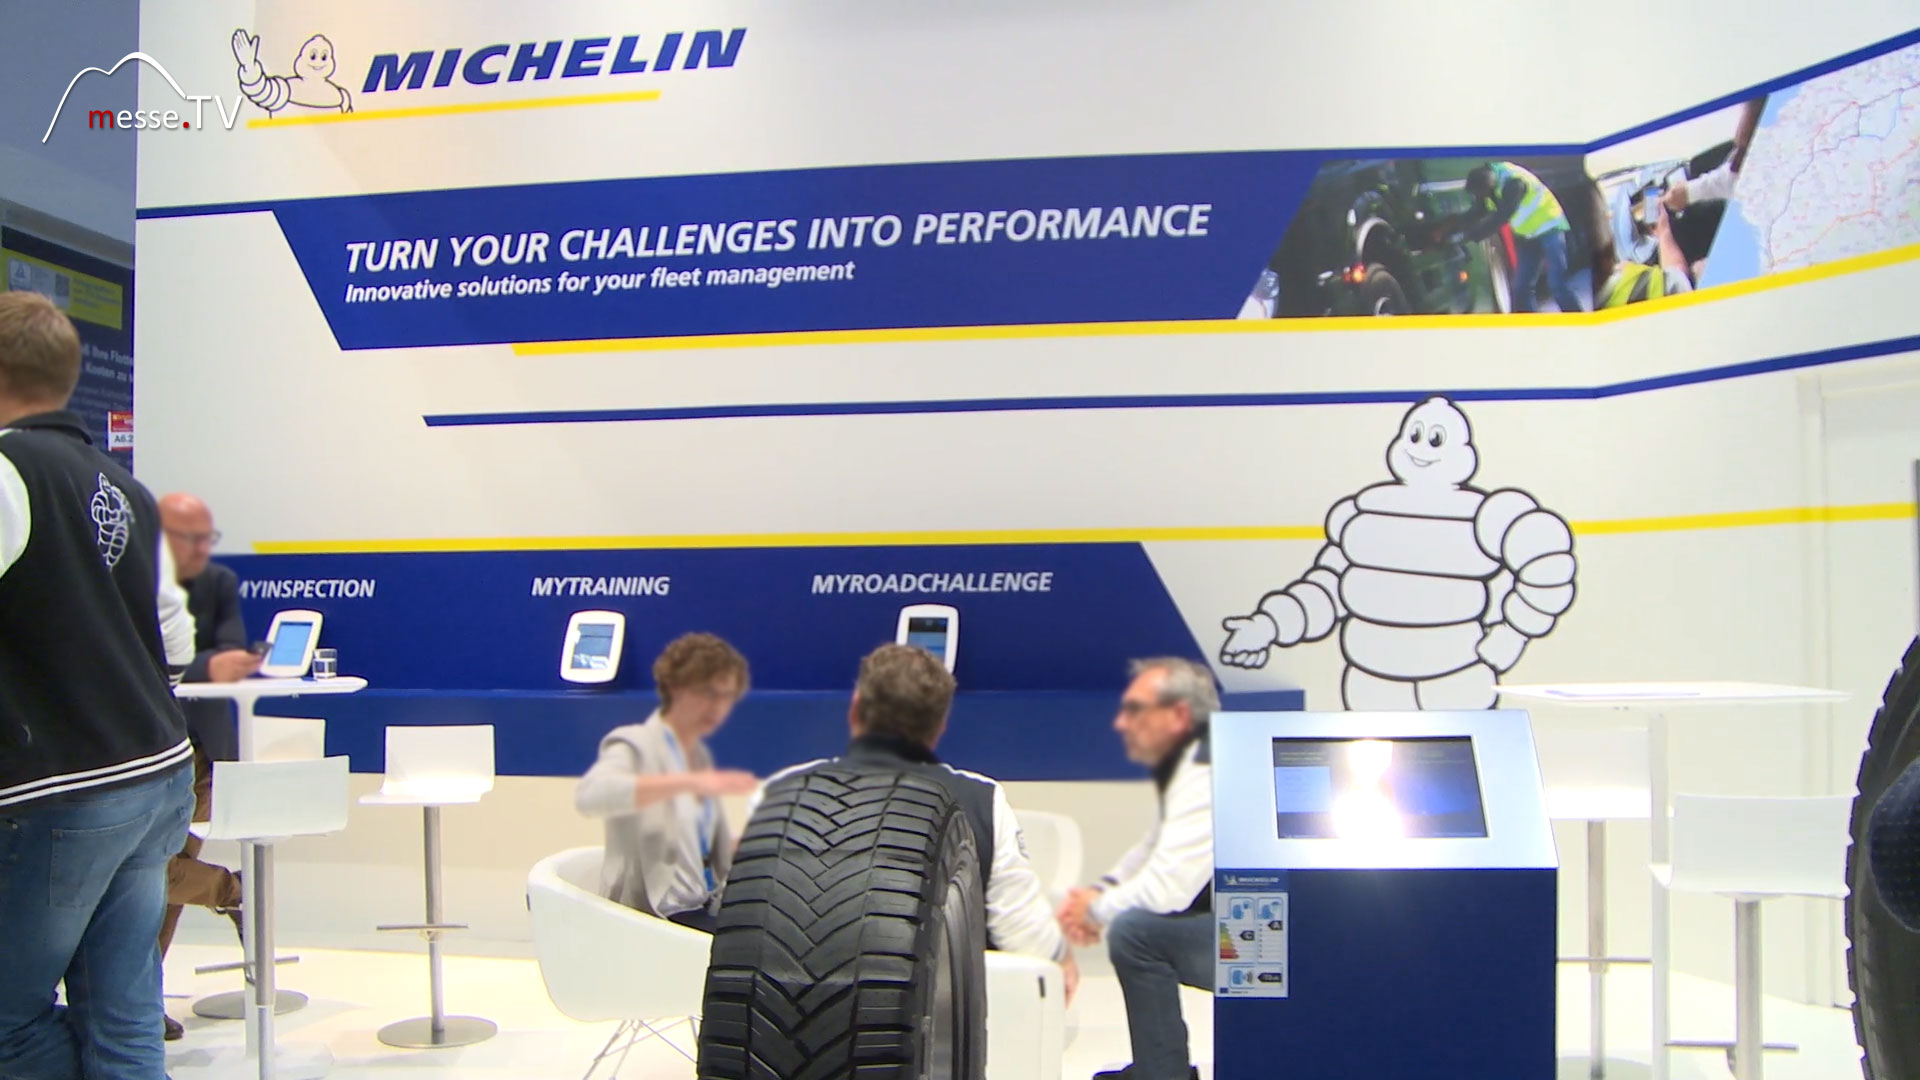 MICHELIN Messestand transport logistic 2019 Messe München